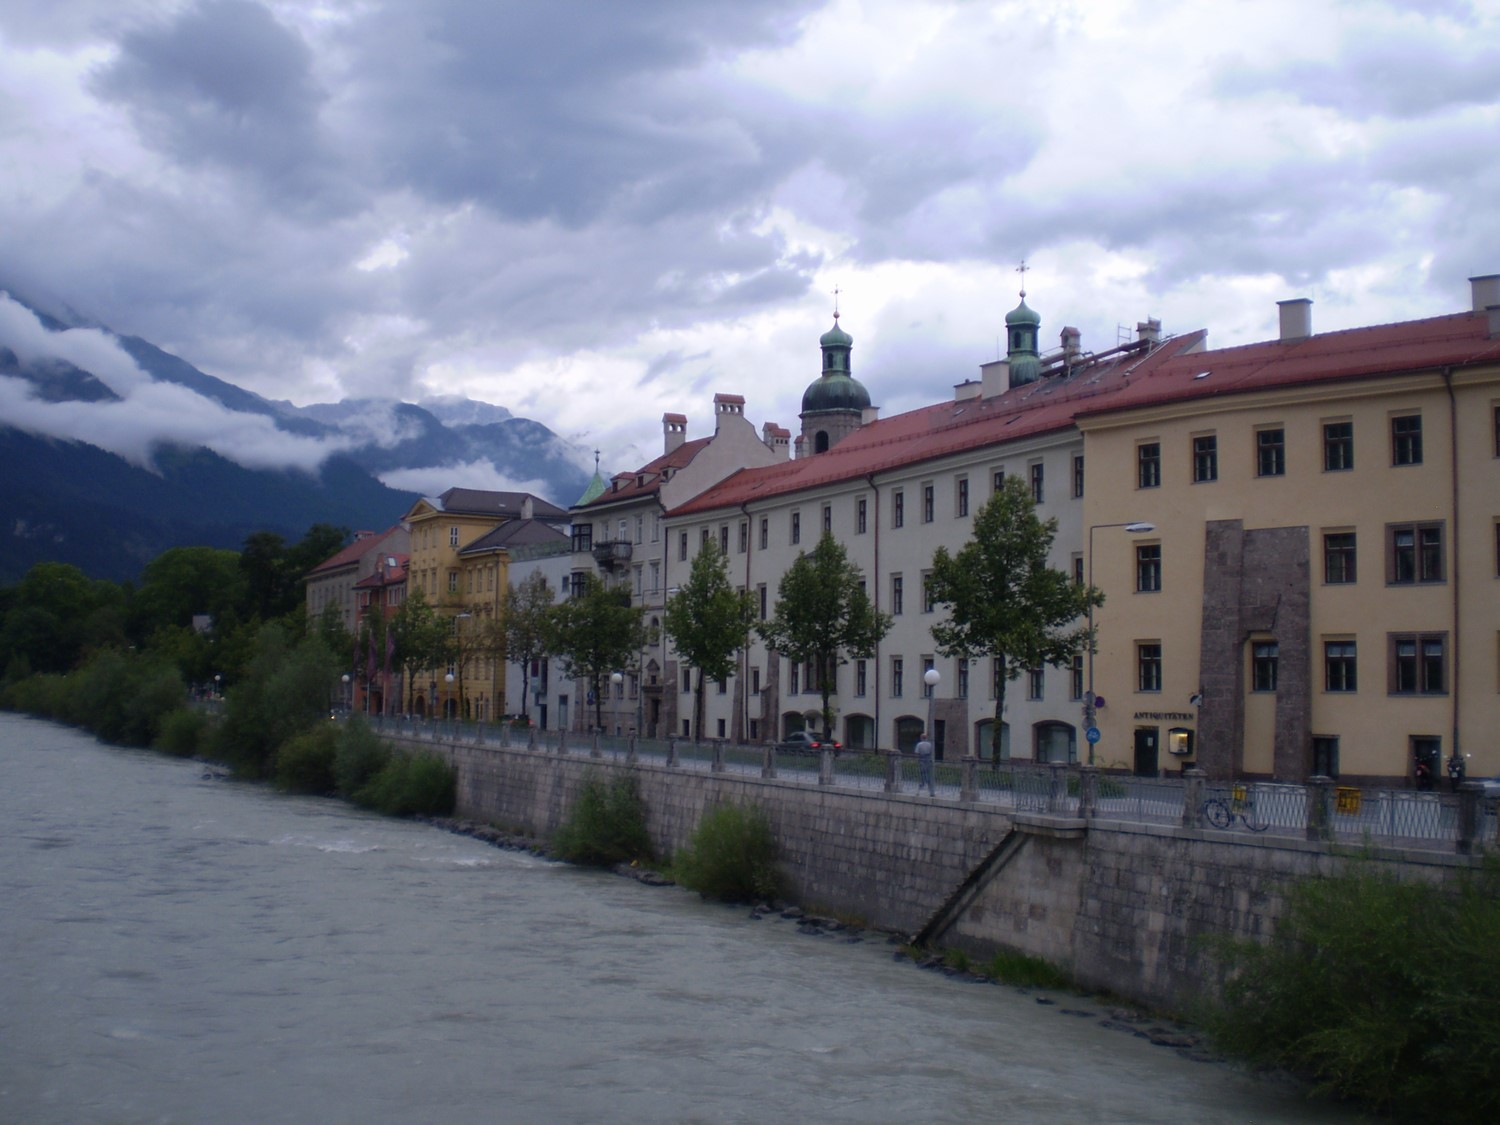 Altstadt-Innsbruck-An_Irishman-on-tour